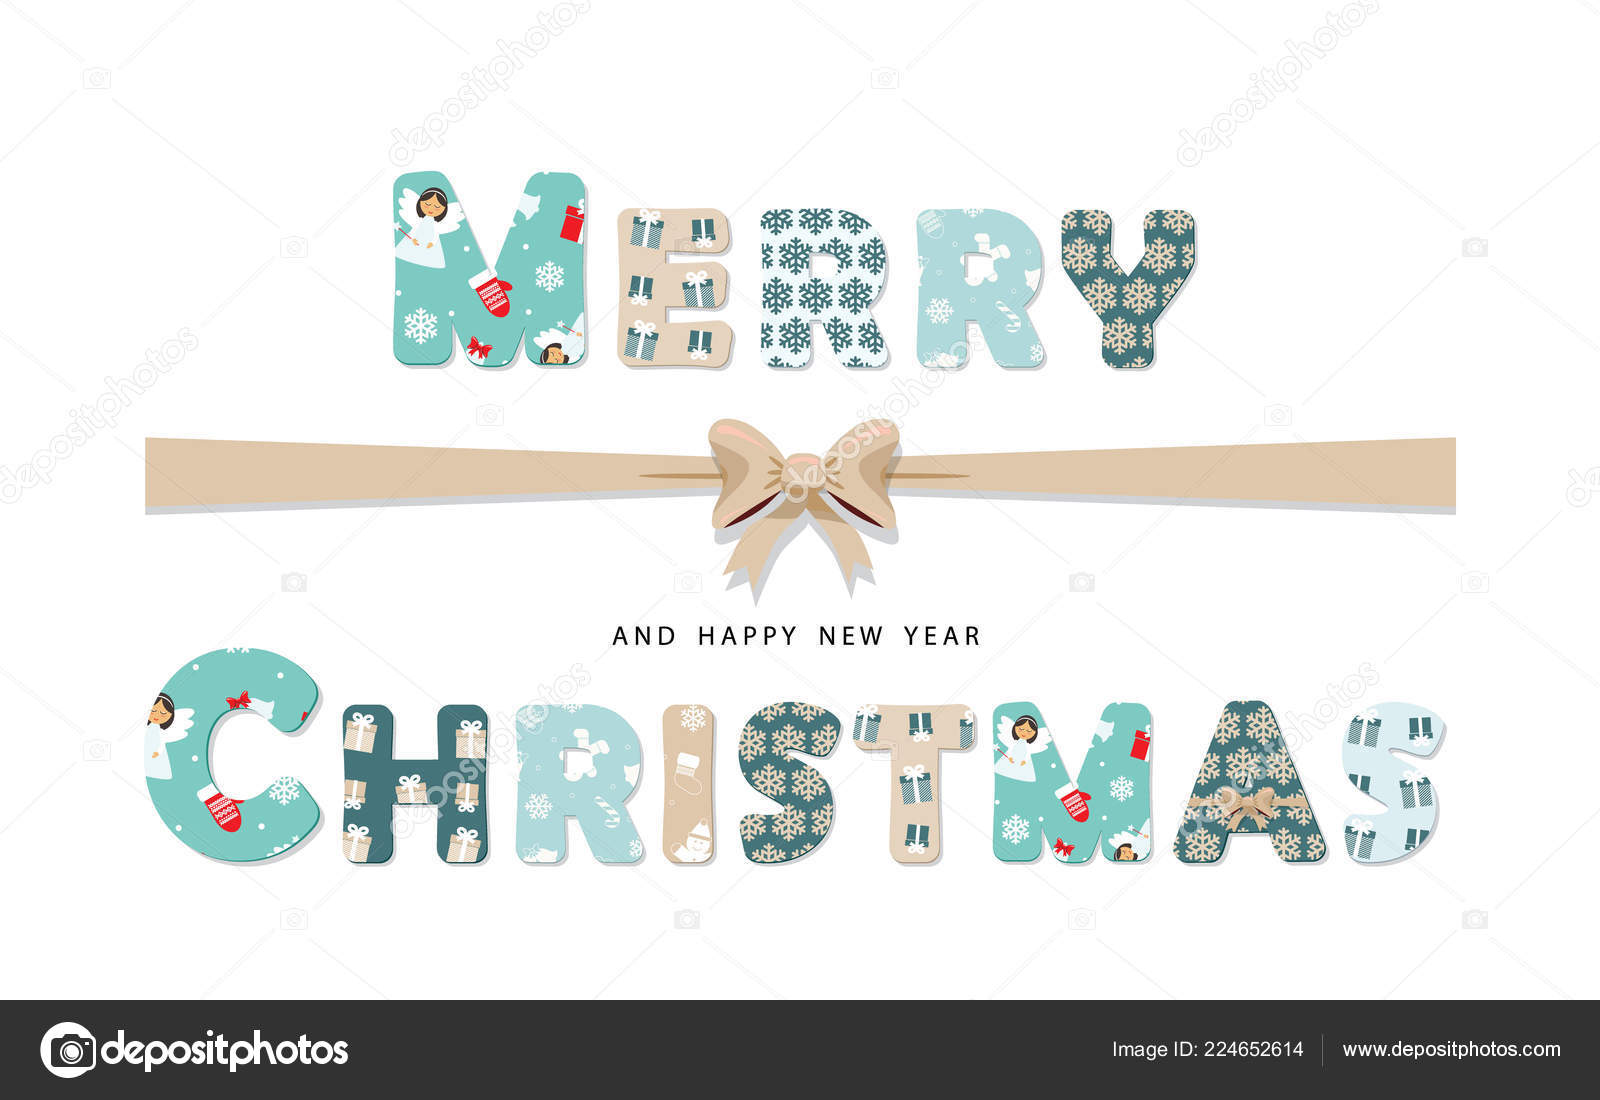 Christmas Cutout Patterns.Merry Christmas Lettering Paper Cutout Letters Different